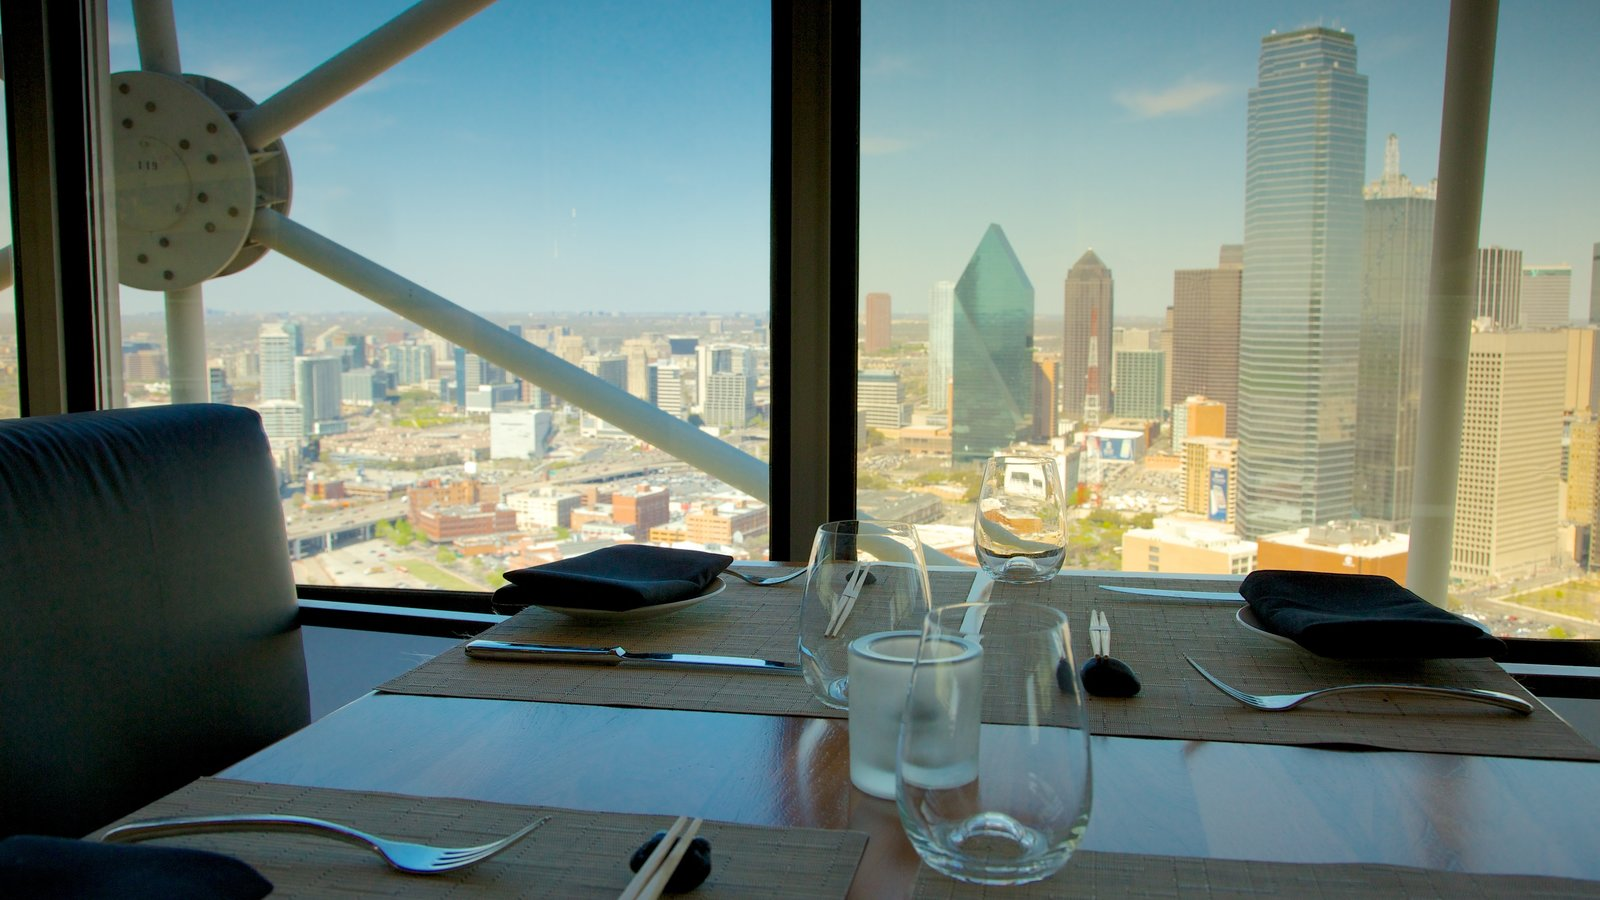 Modern Architecture Dallas modern architecture pictures: view images of reunion tower